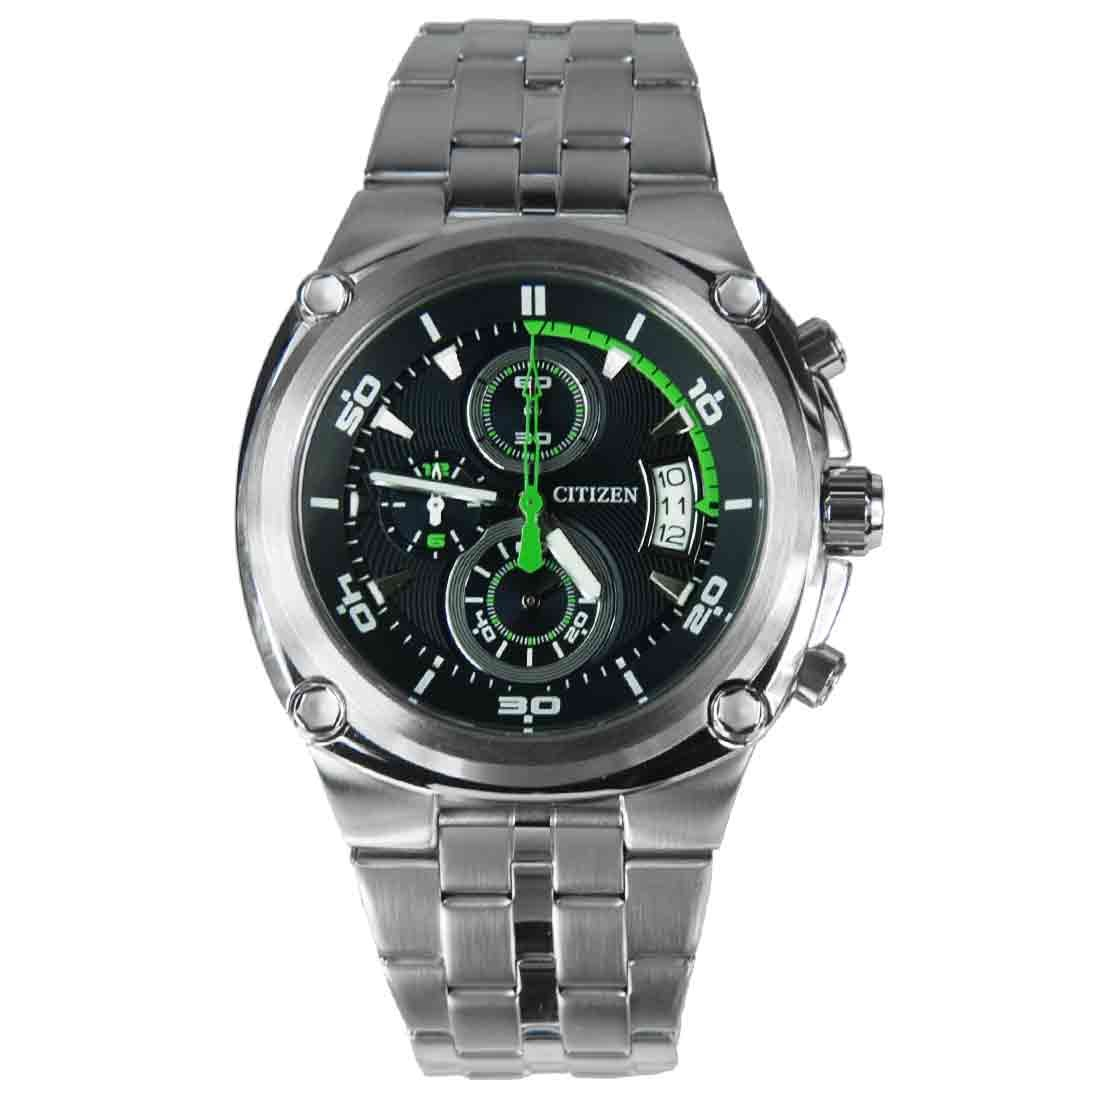 Citizen Chronograph Sports Men's Watch รุ่น AN3350-50L